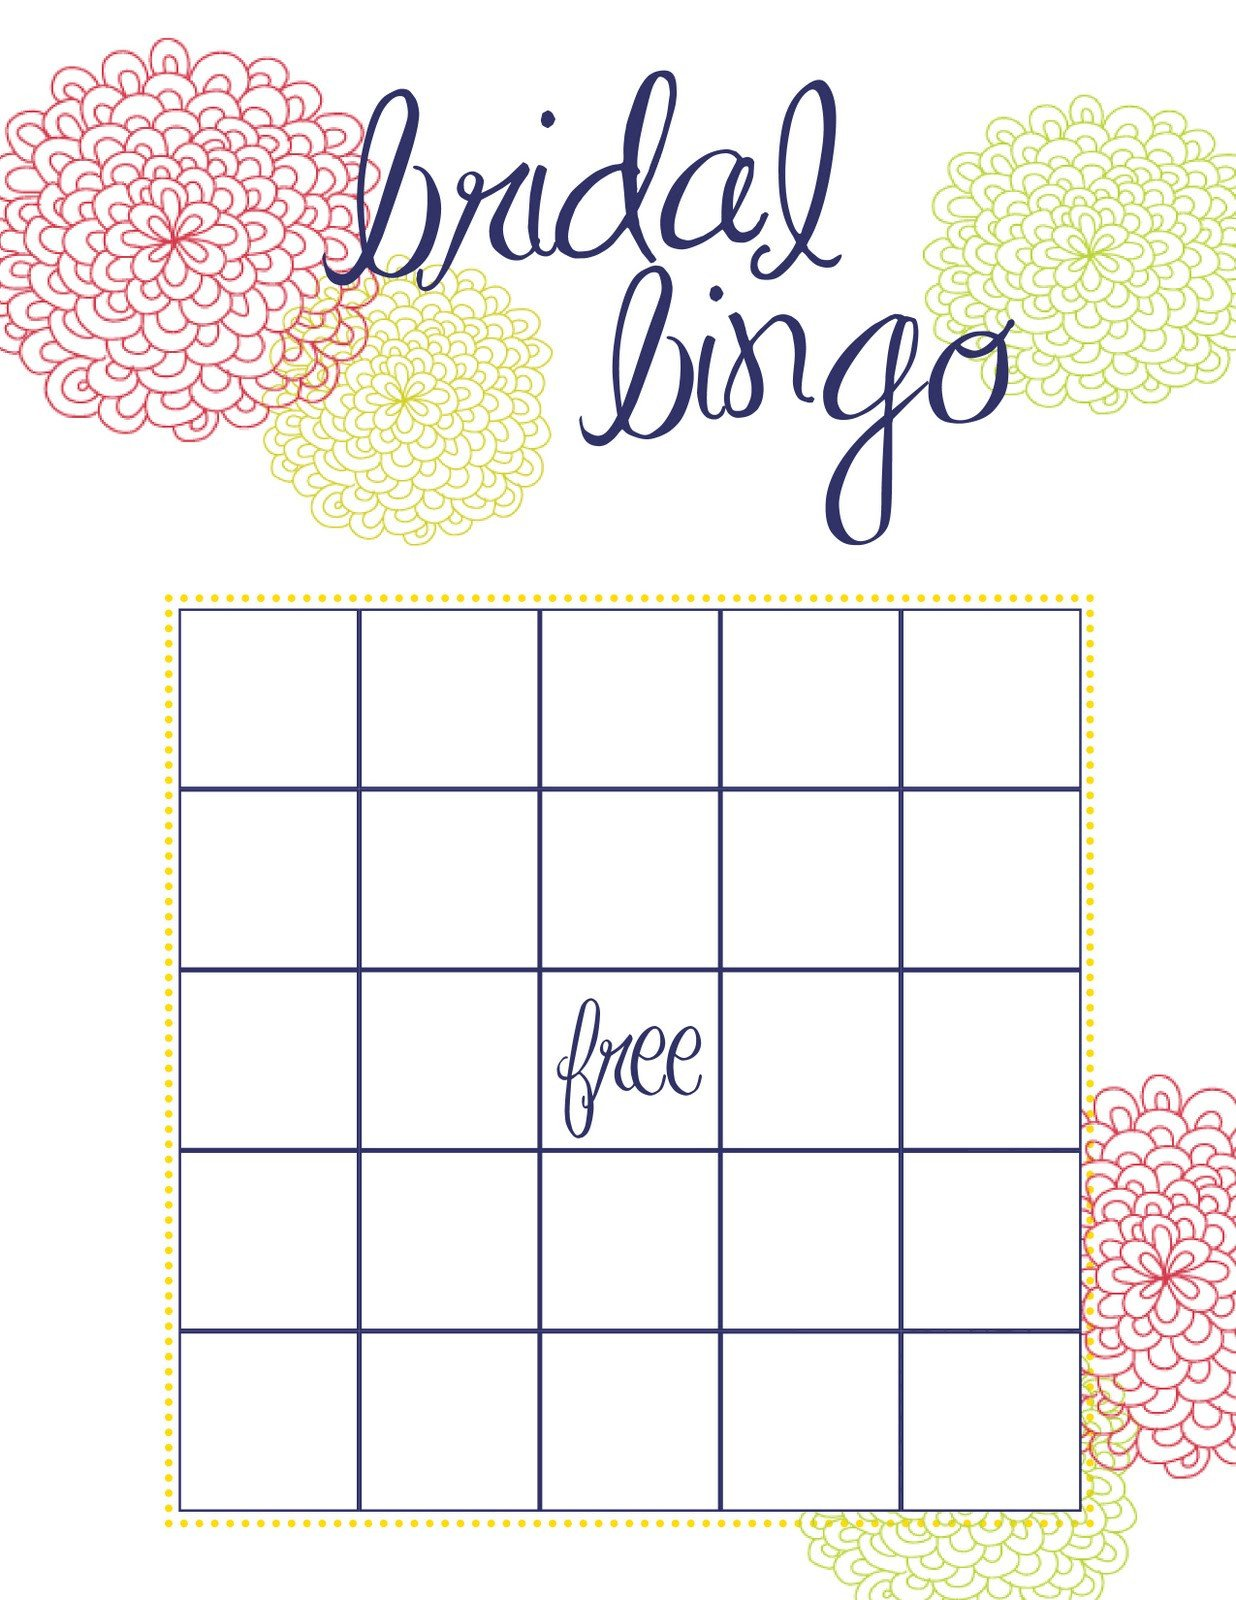 Bridal Shower Bingo Template How to Throw the Best Bridal Shower Pretty Happy Love